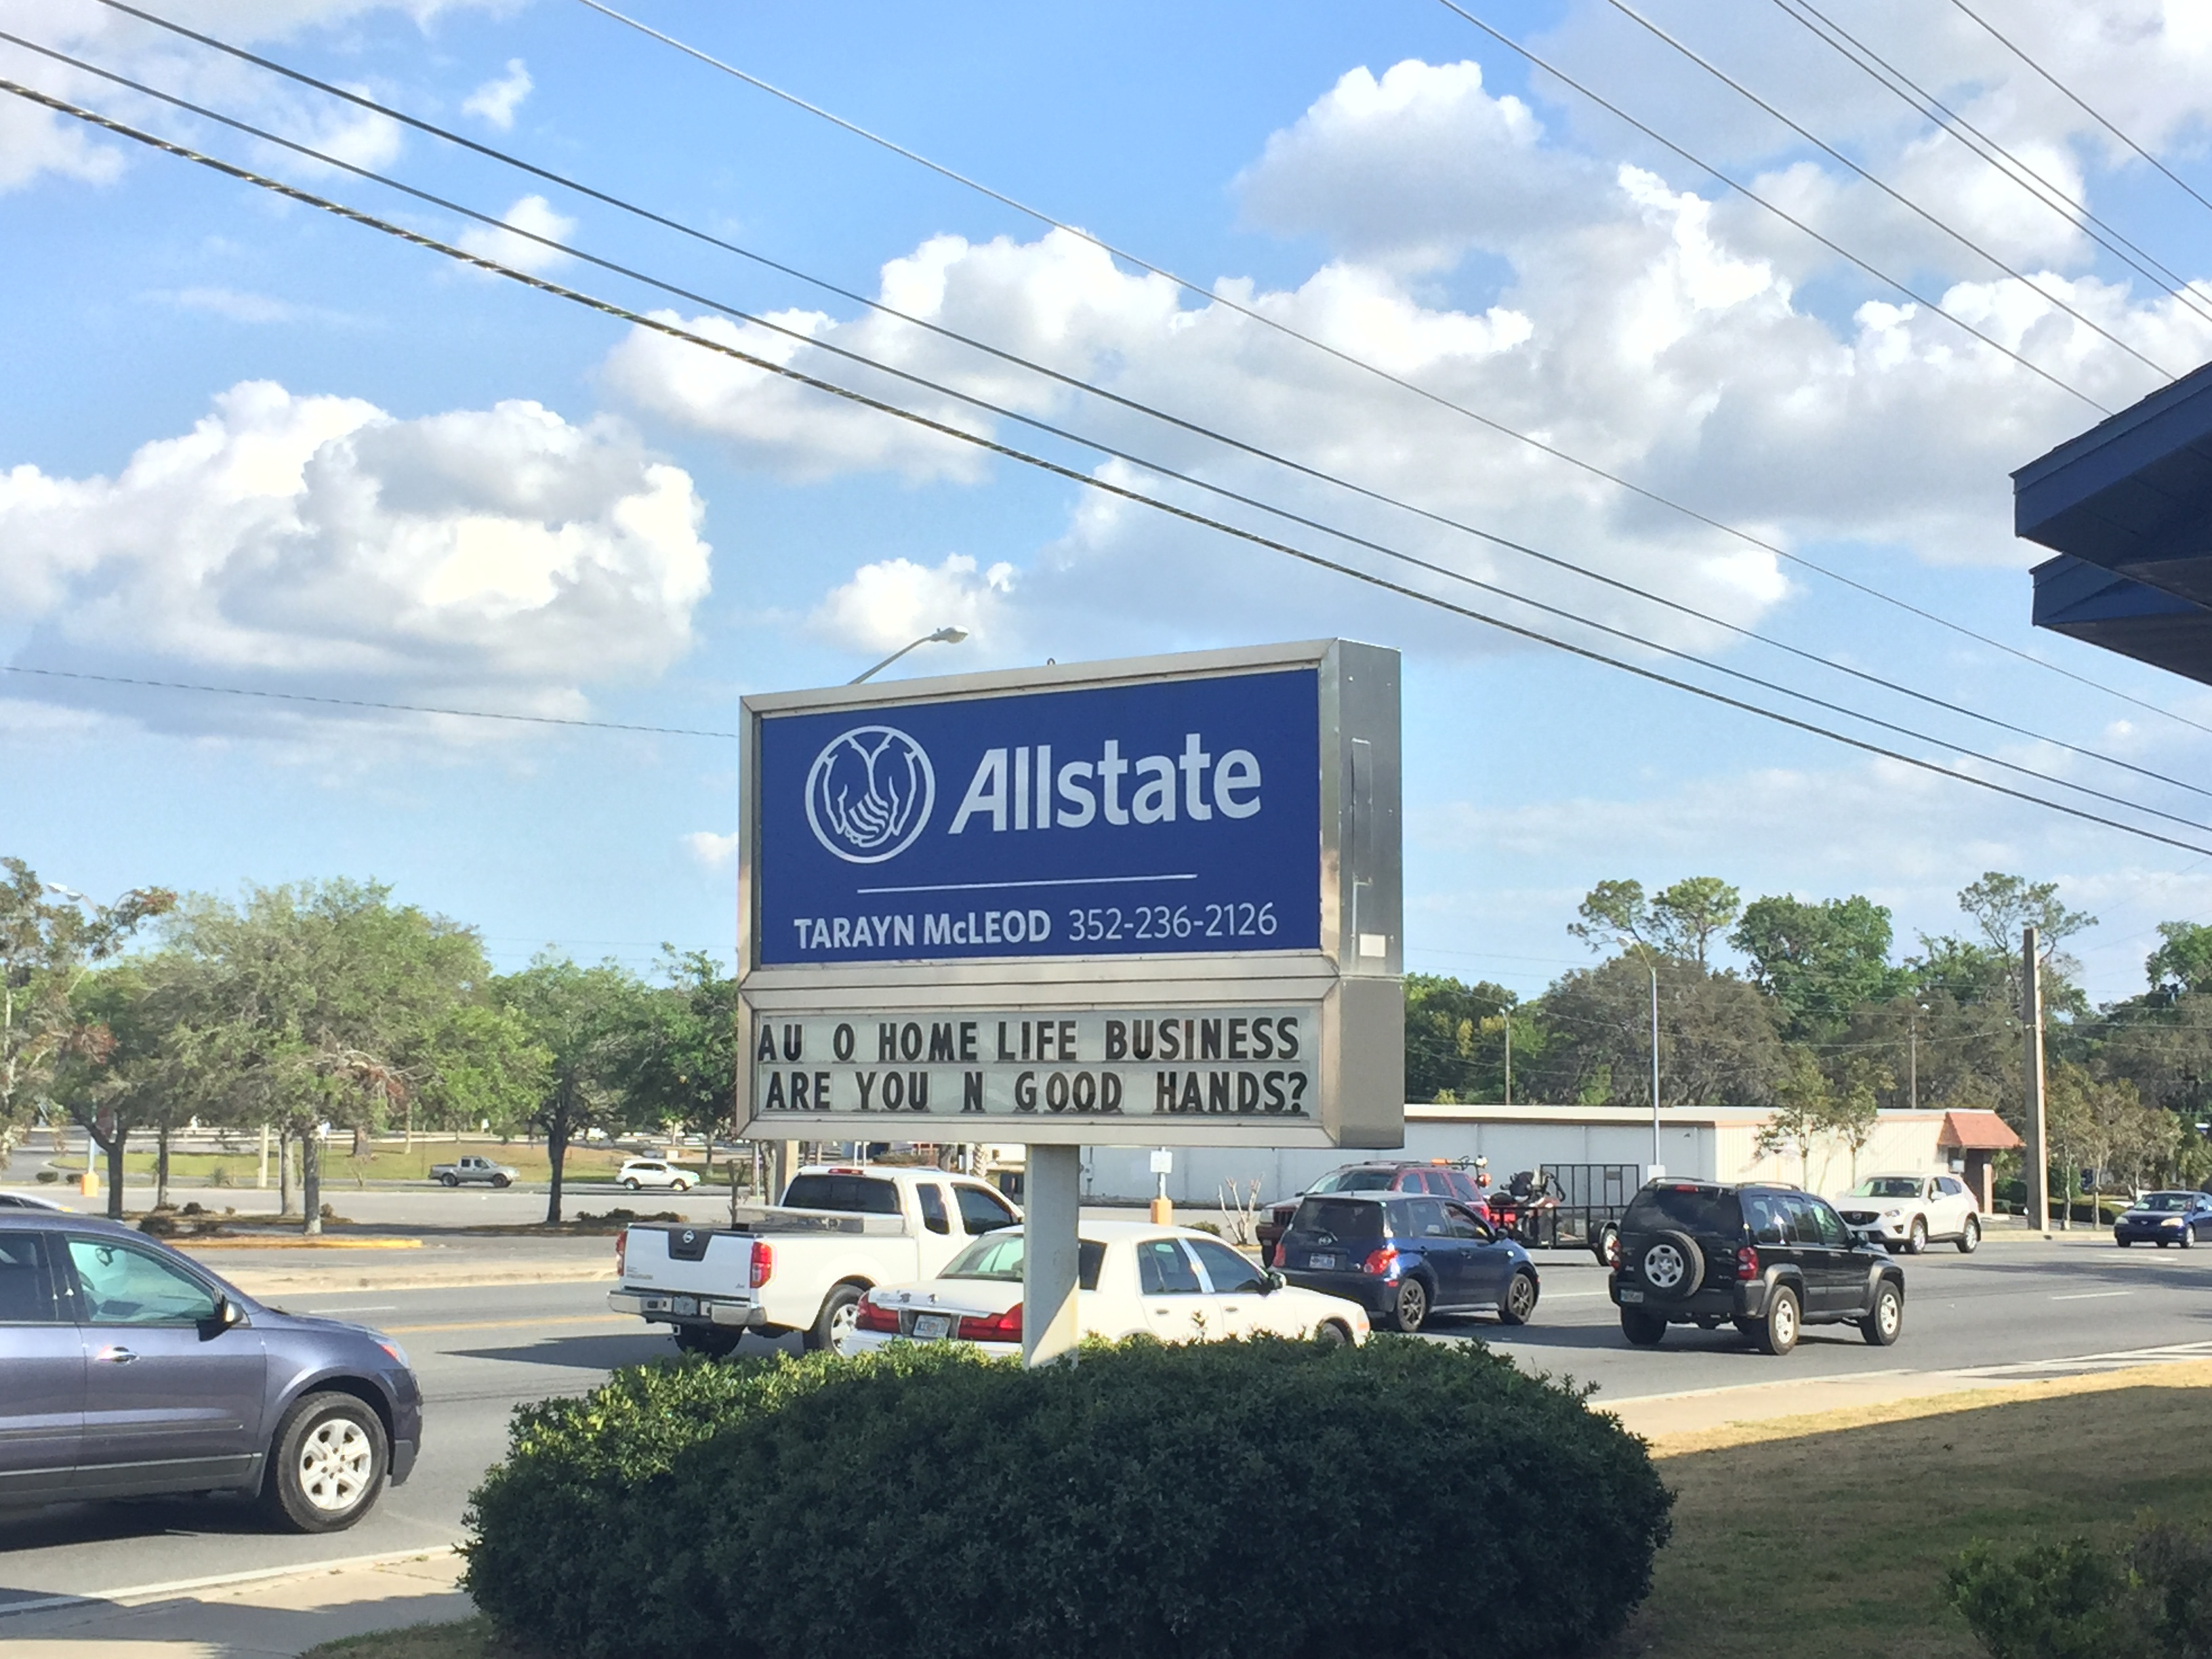 Allstate | Car Insurance in Ocala, FL - Tarayn McLeod